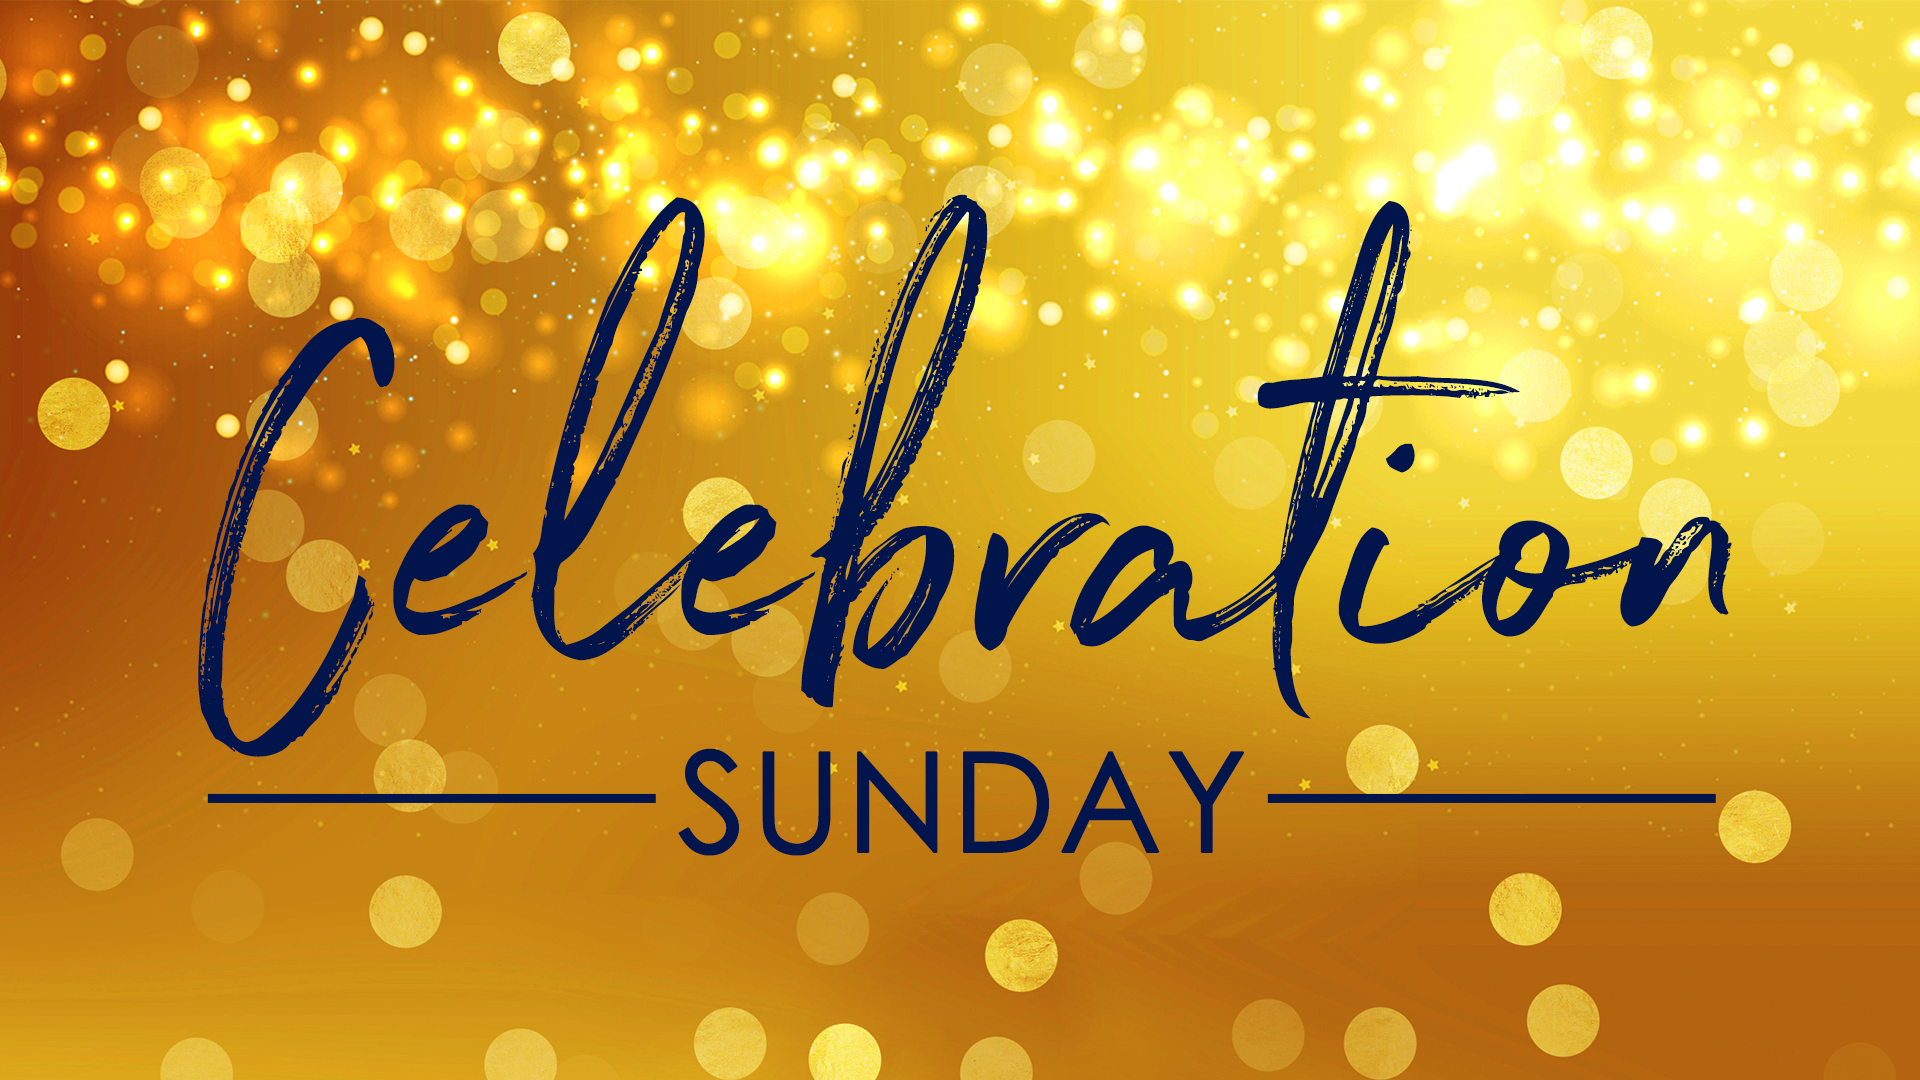 Celebration Sunday 2019